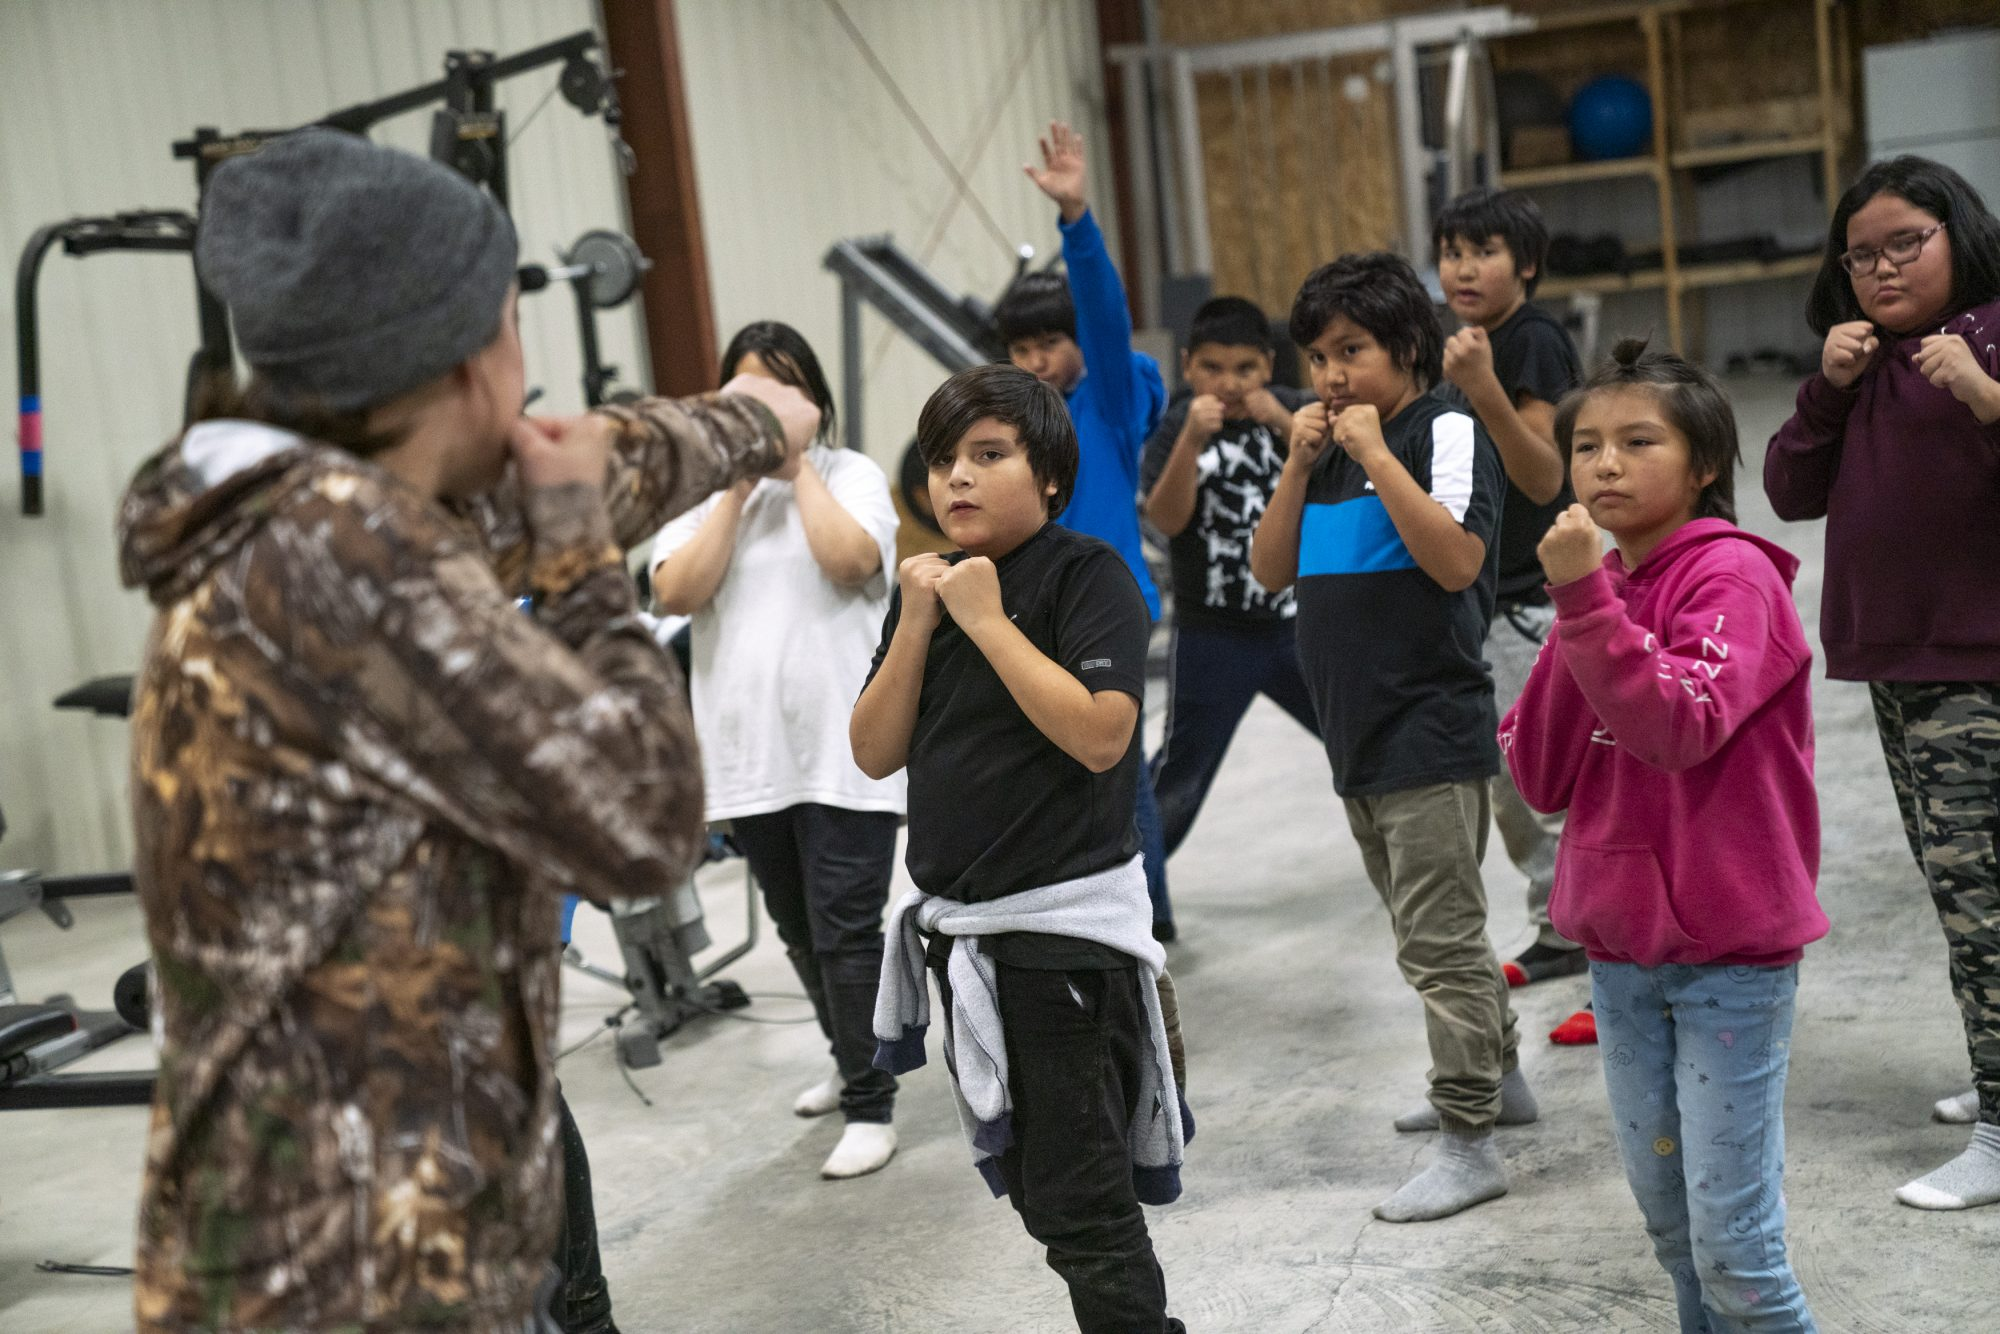 Mary Spencer coaches First Nations youth in boxing